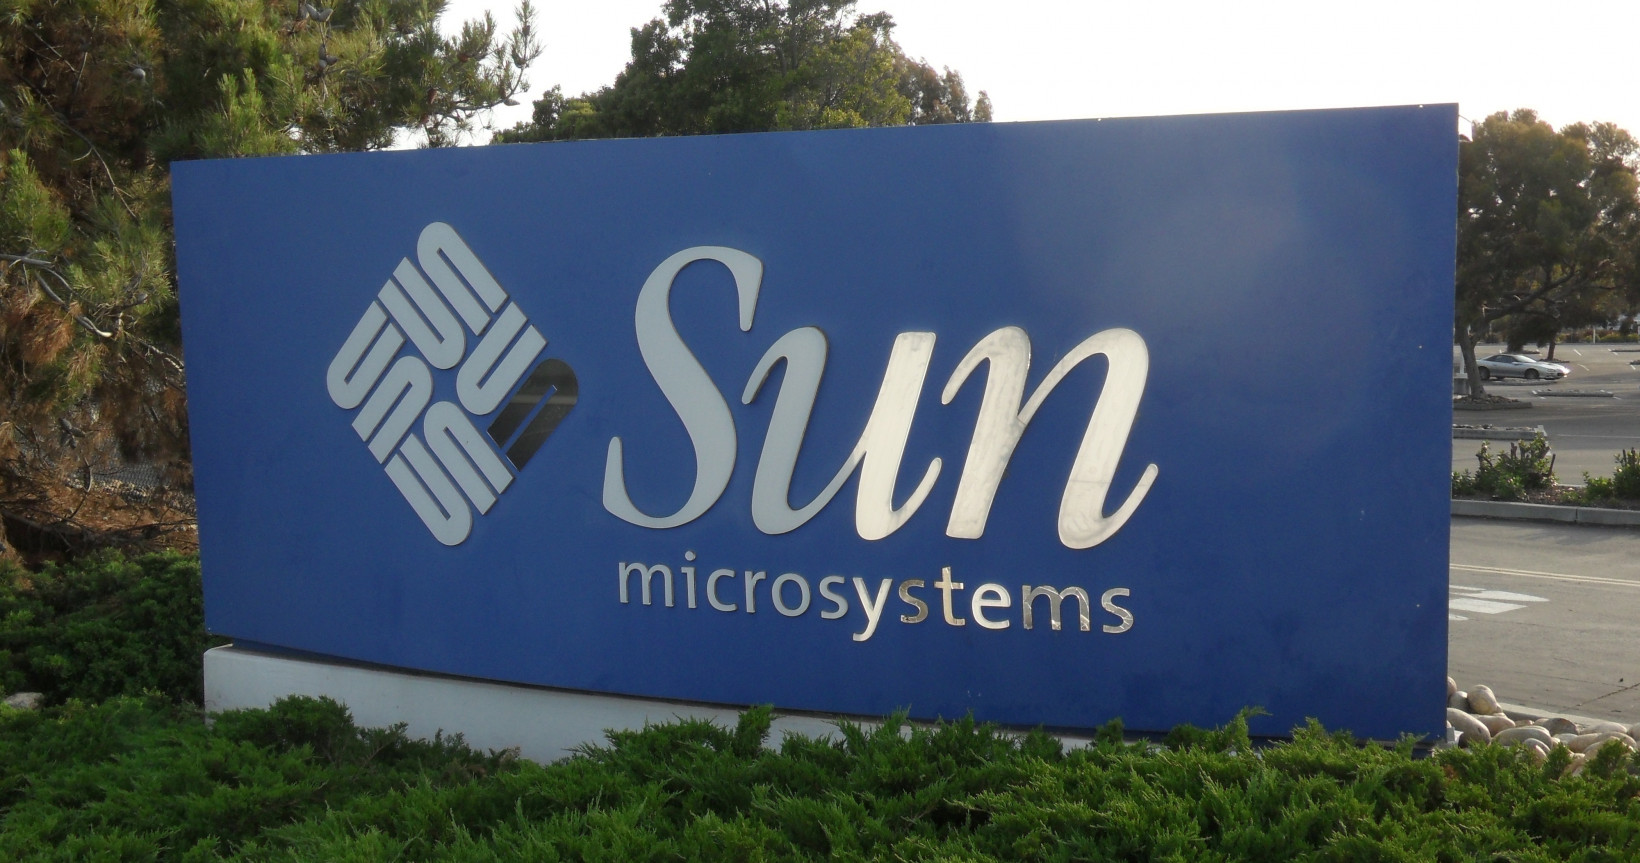 Cloudflare acquired an old Sun Microsystems slogan and I'm feeling nostalgic